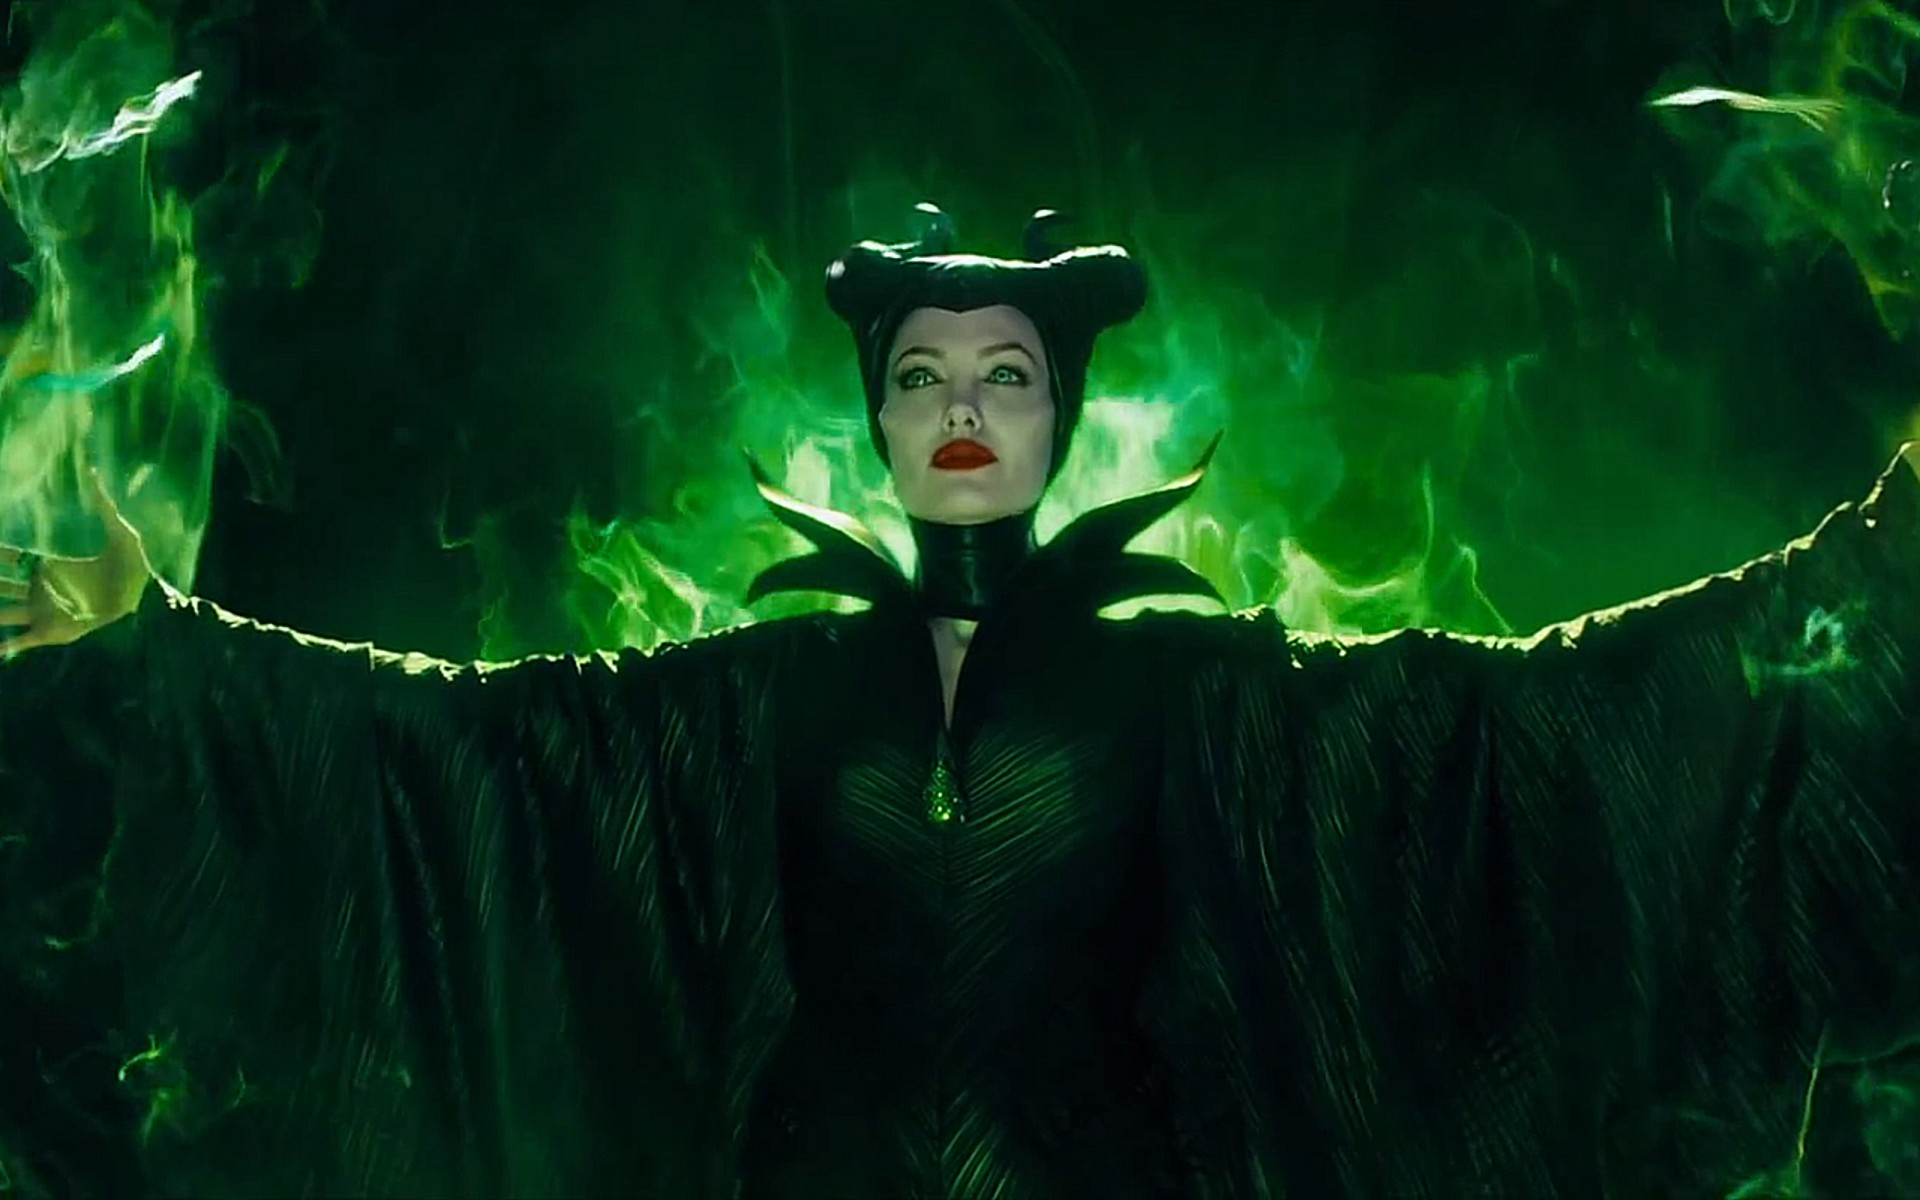 Angelina Jolie in Malificent Full HD Wallpaper and